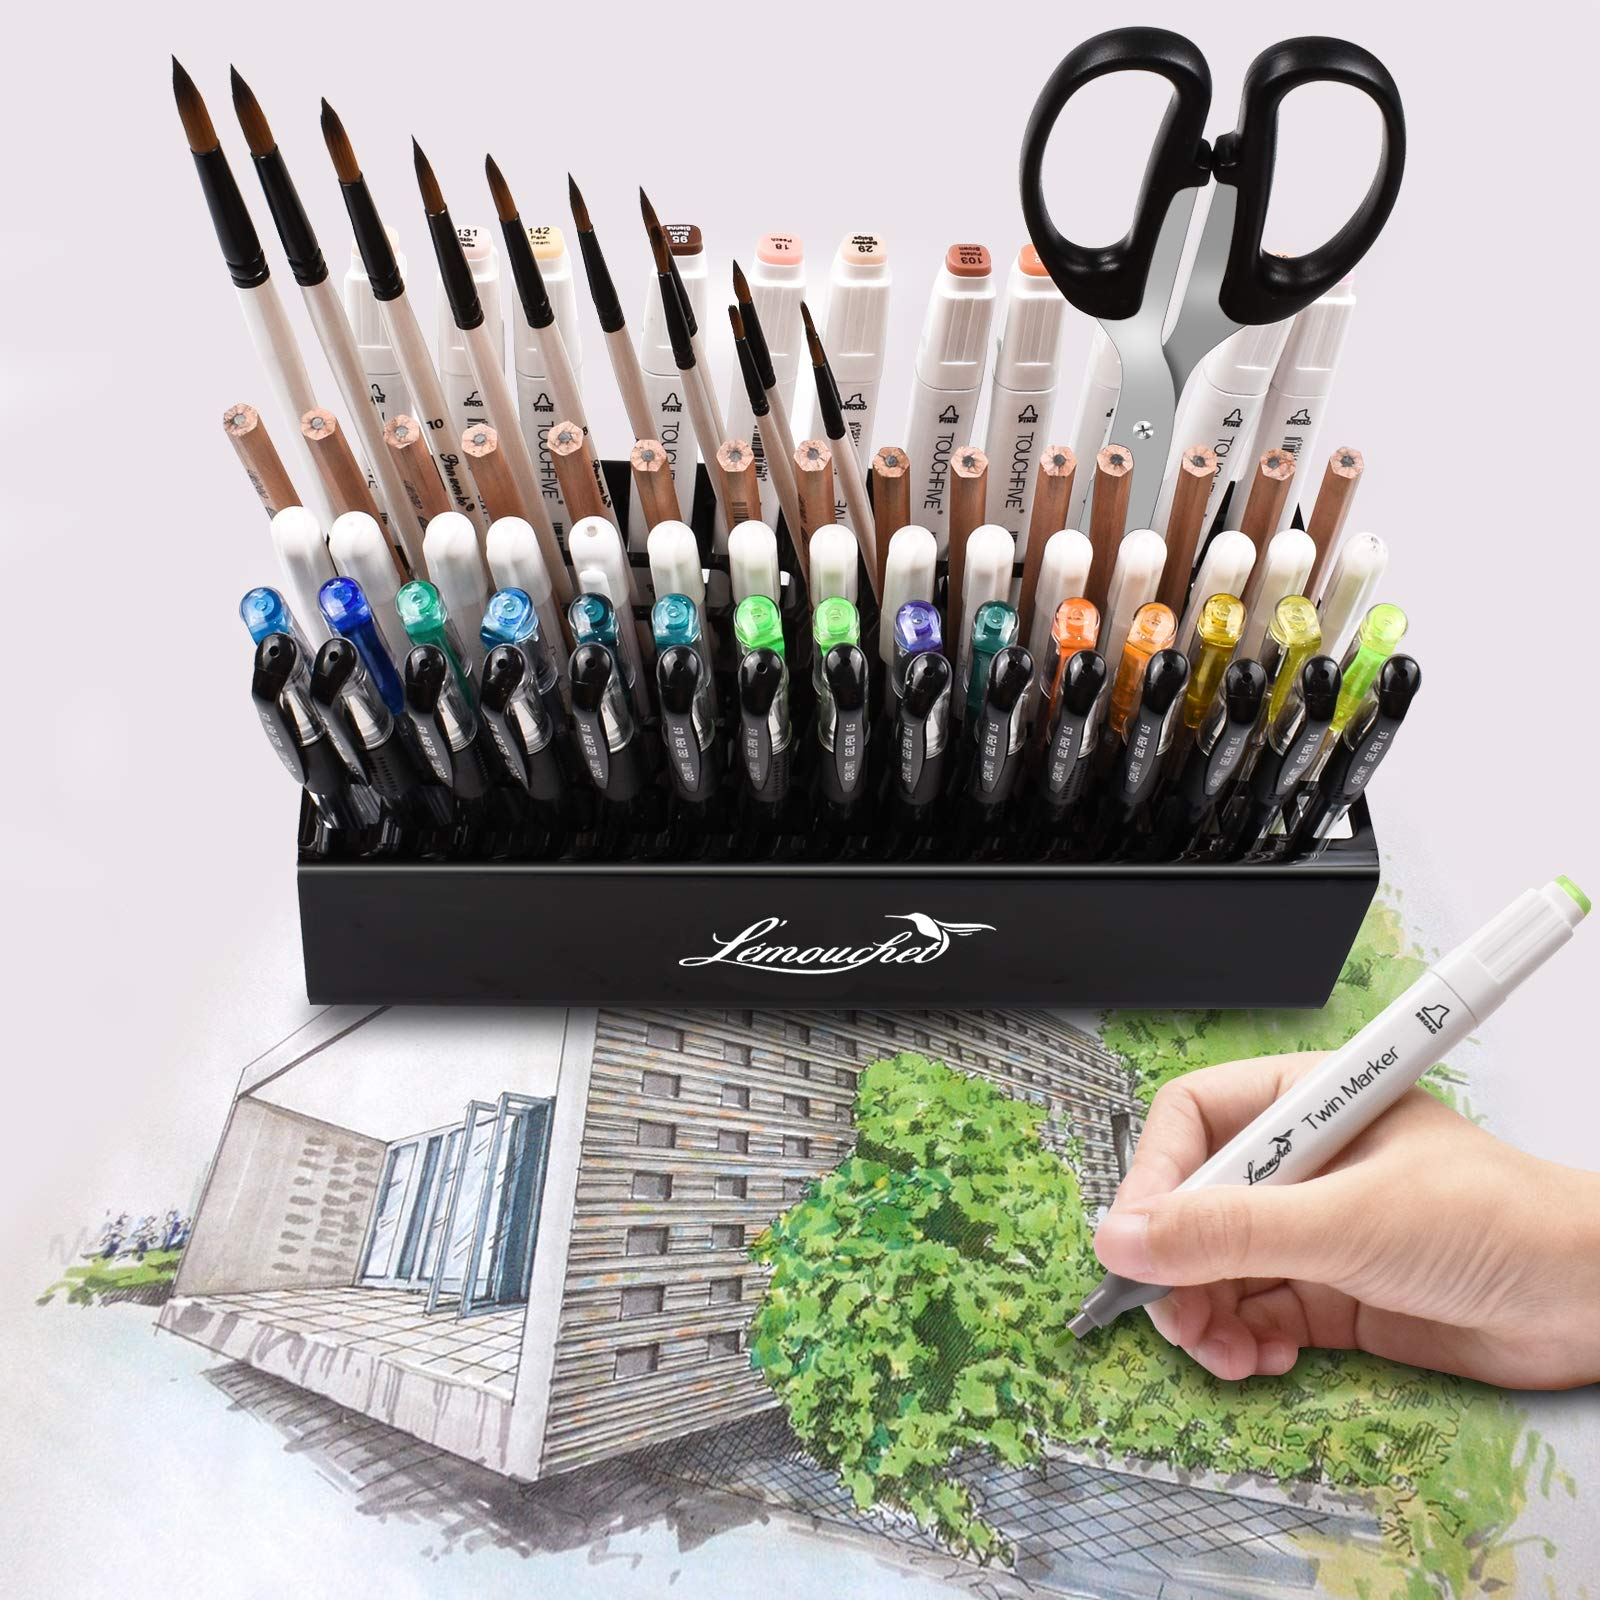 L\'ÉMOUCHET 86 Hole Acrylic Pencil & Brush Pen Holder - Desk Stand Organizer Holder for Pens, Paint Brushes, Crayons Colored Pencils, Sketch Pencils, Tombow Watercolor Brush Pens